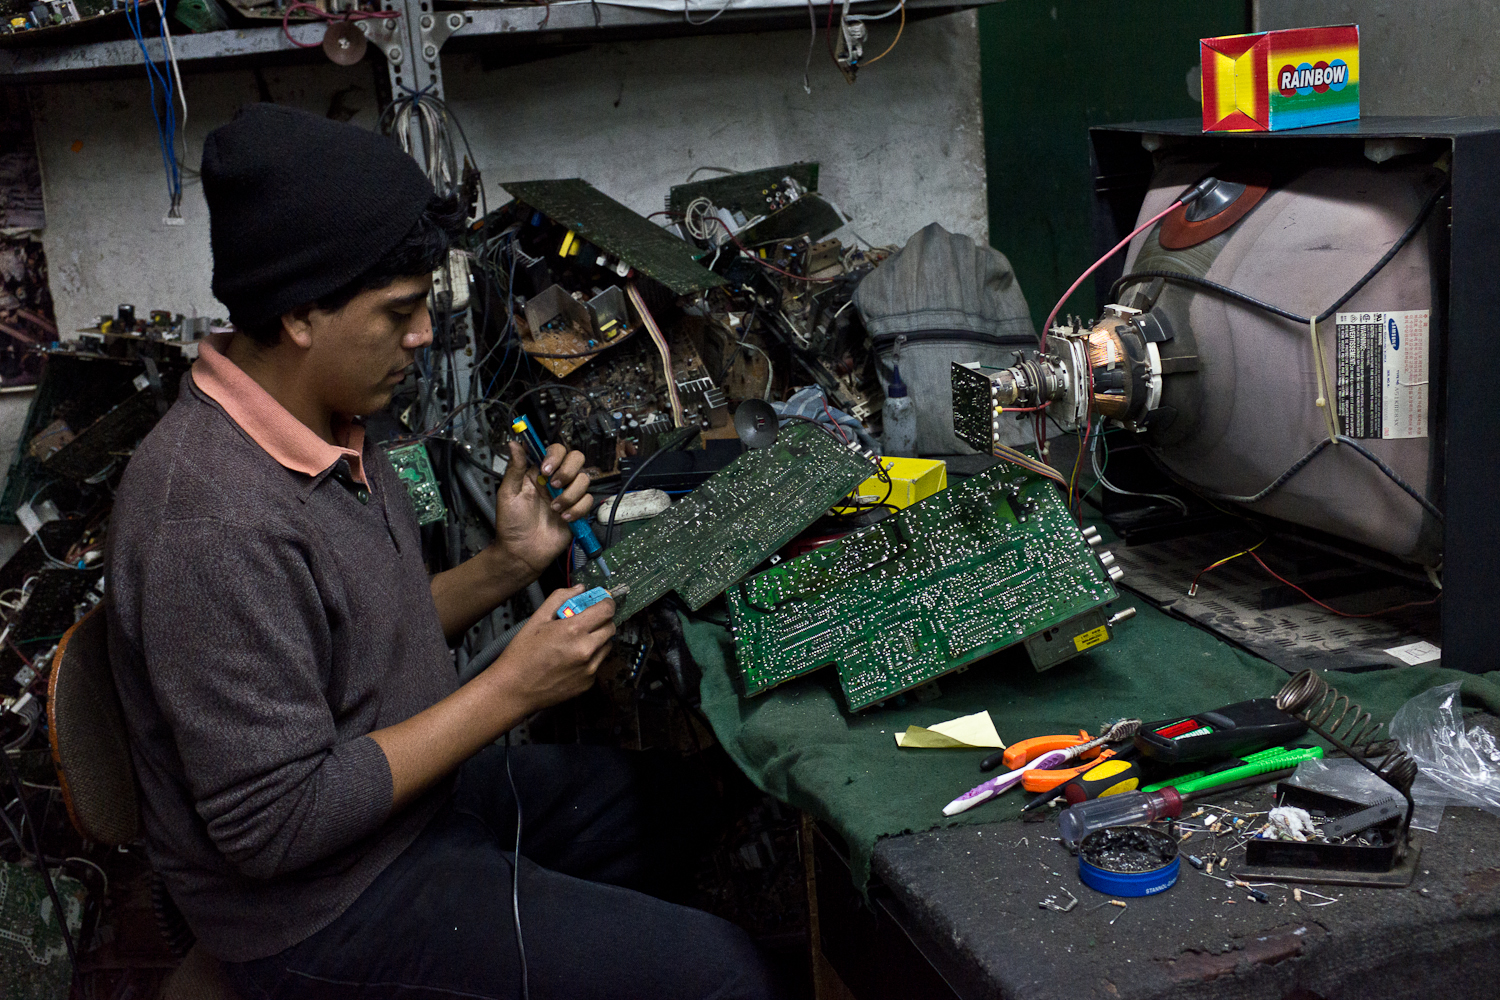 A repairman fixes a TV. Cathode ray tube (CRT) televisions disappeared from American store shelves nearly a decade ago. And yet, in the backstreets of Lima, a market for used CRT TVs thrives.